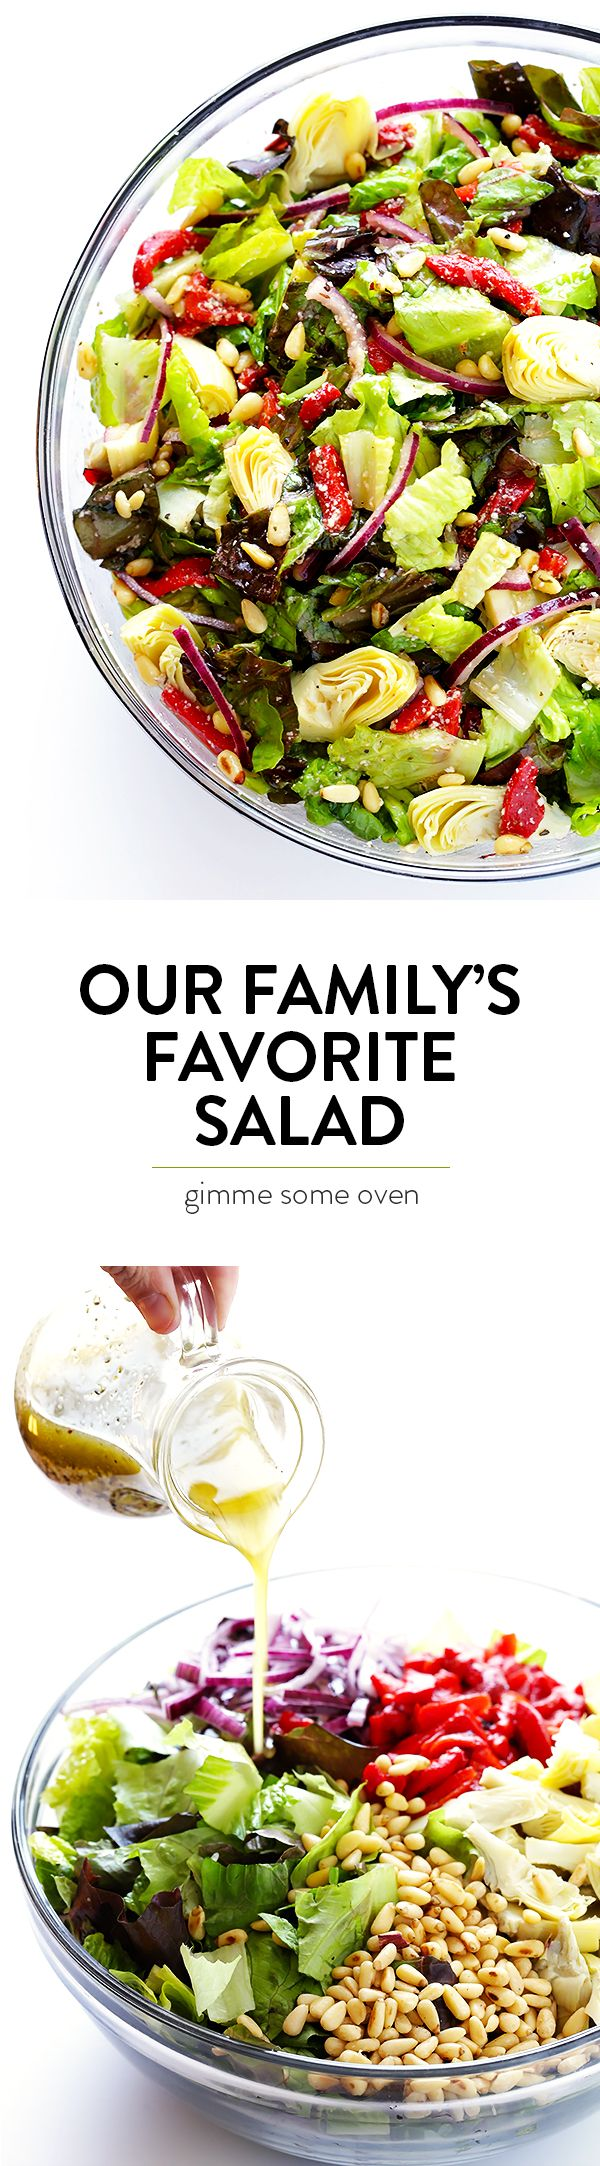 Our family's favorite salad is made with lots of artichoke hearts, roasted red peppers, toasted pine nuts, and a zesty Parmesan vinaigrette.  SO delicious, and always a crowd favorite! | gimmesomeoven.com